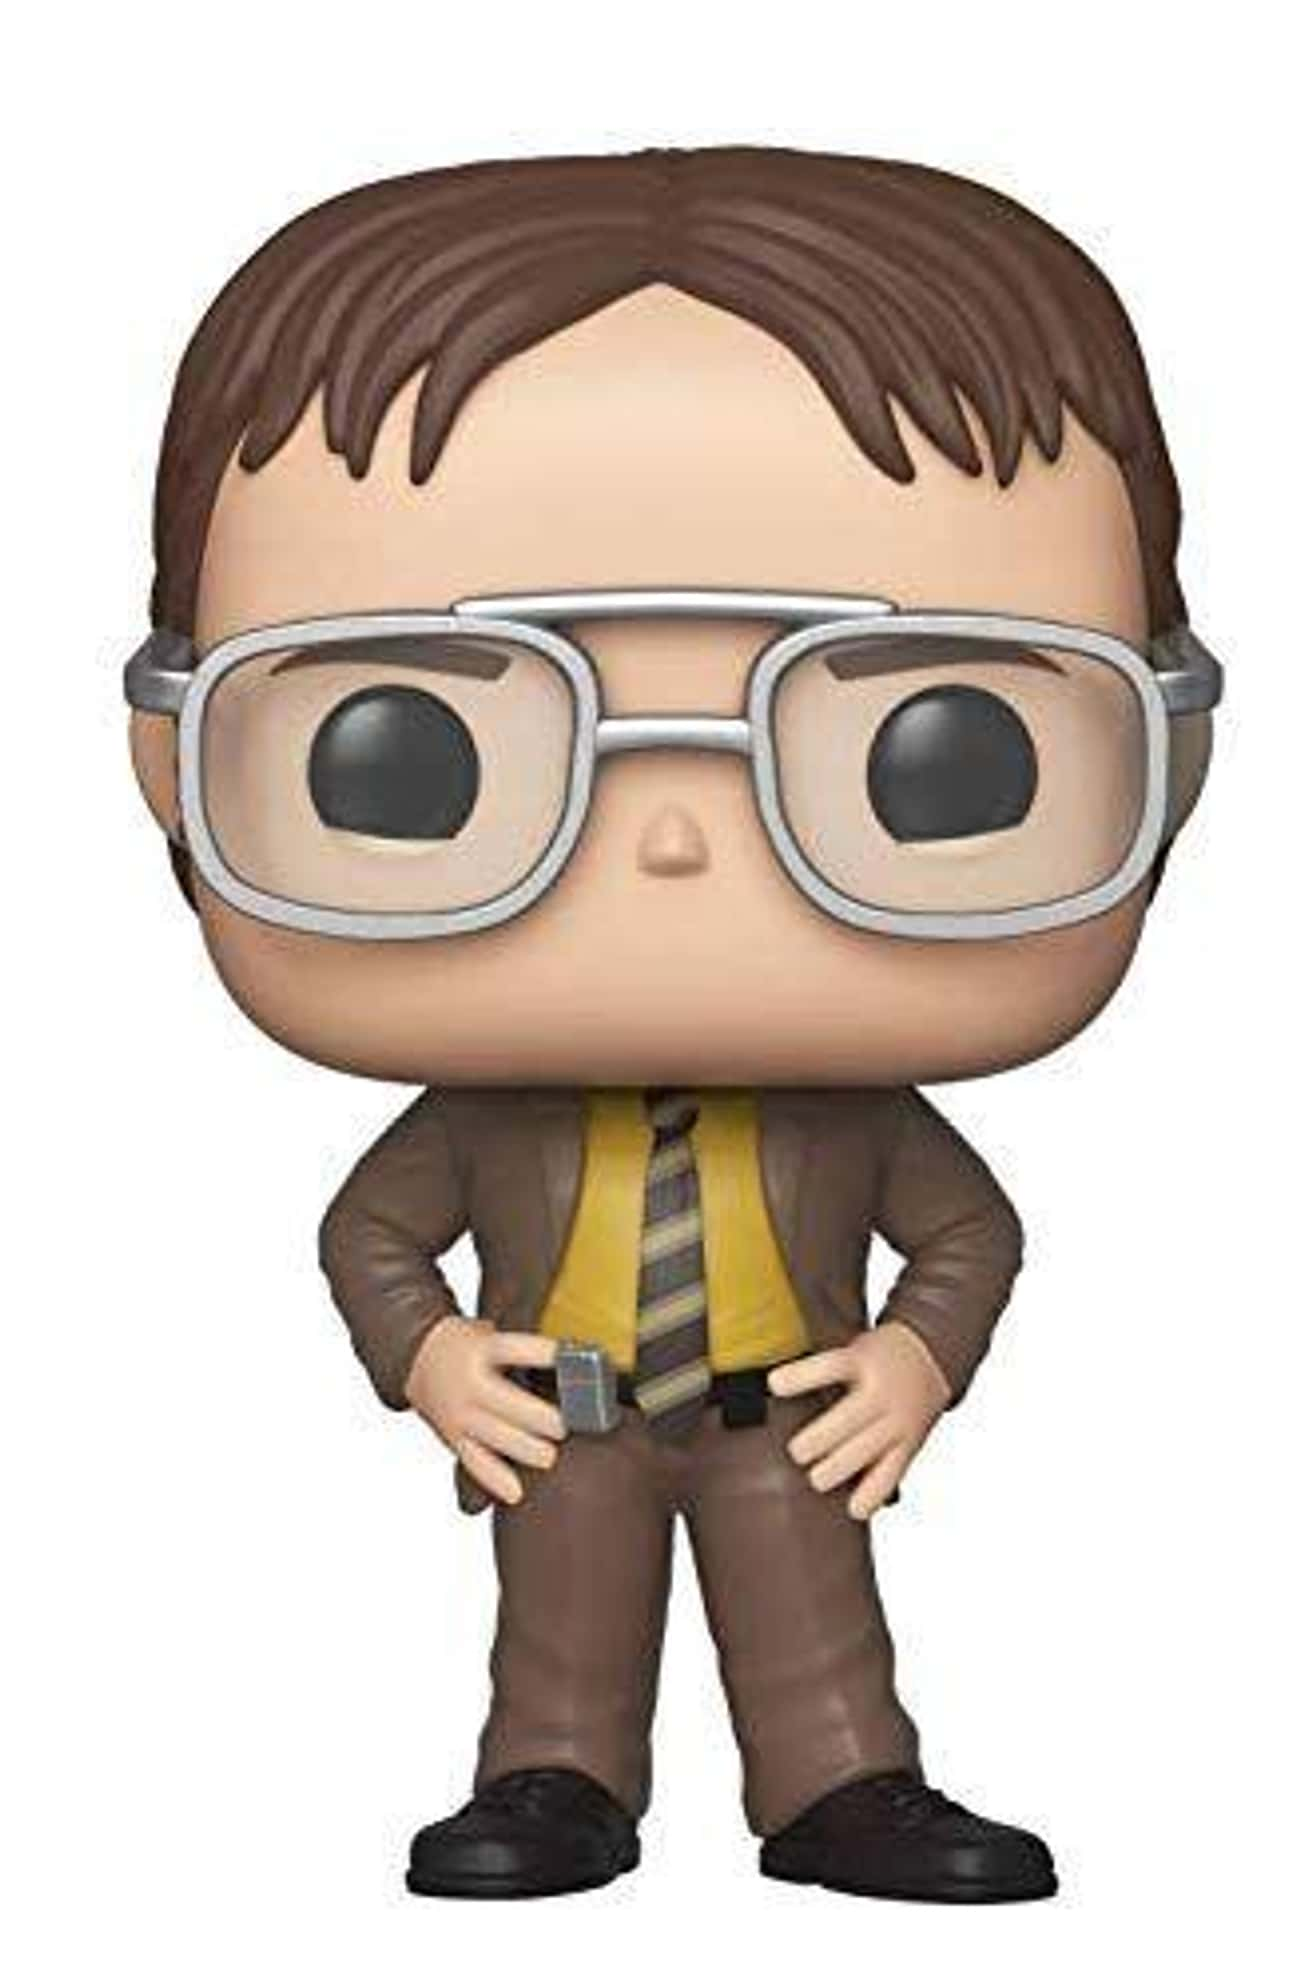 Dwight Schrute is listed (or ranked) 4 on the list Funko Pops That Actually Look Like The Characters